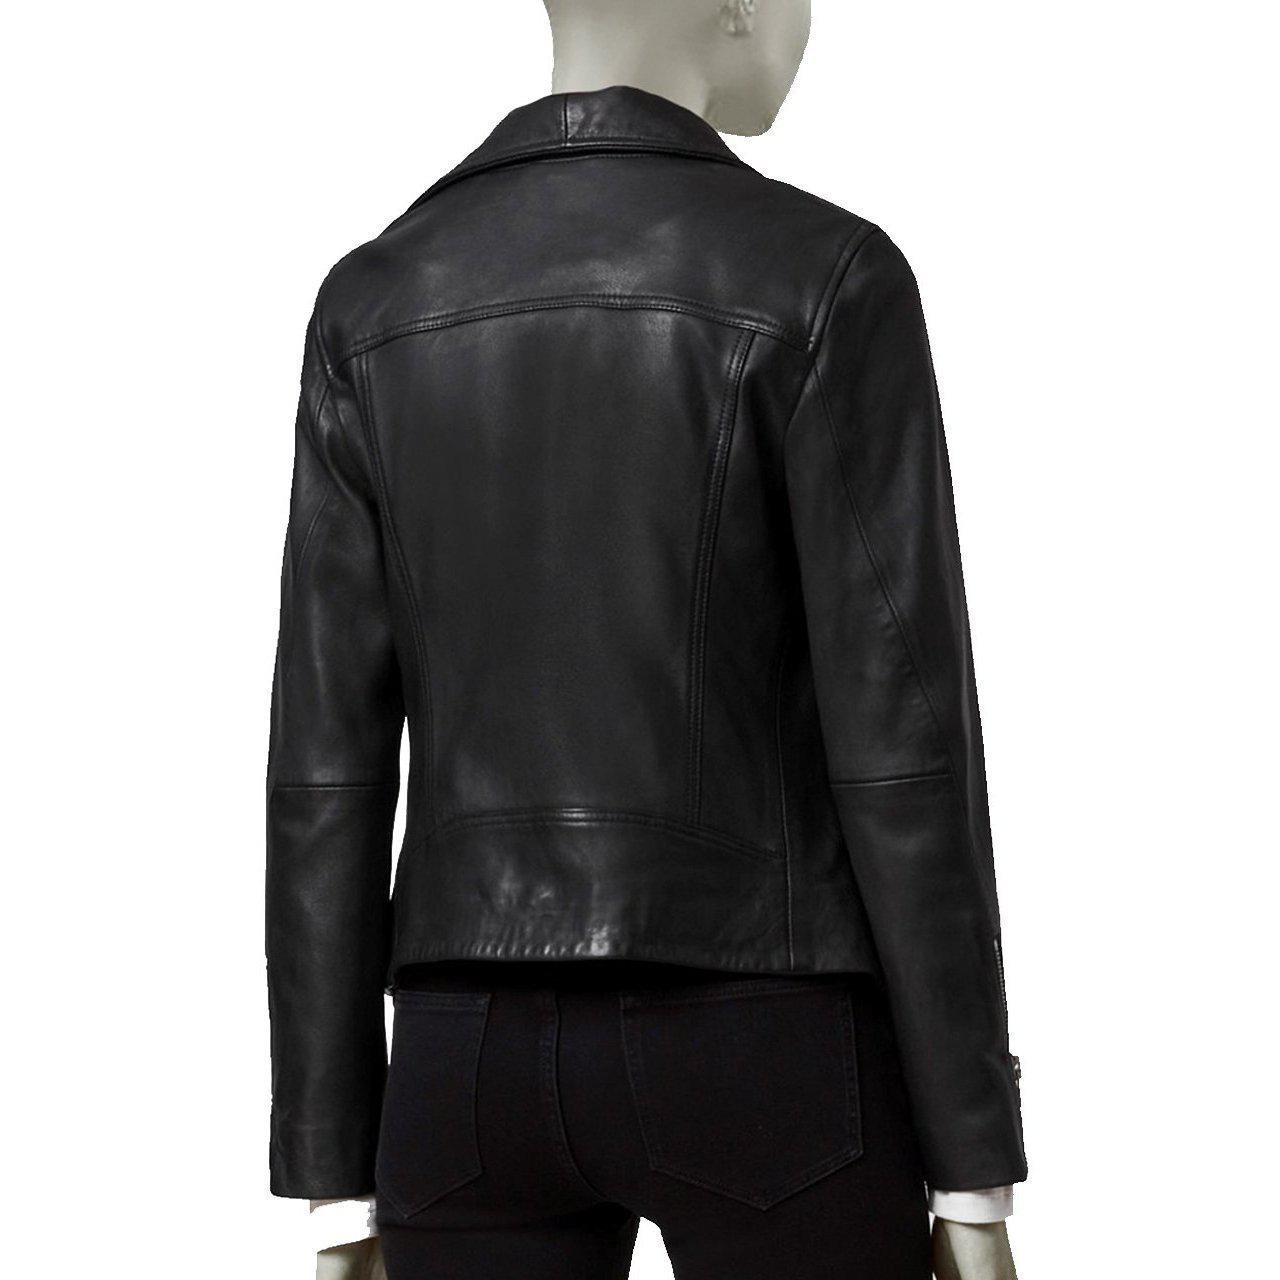 WOMEN LEATHER JACKET WITH LONG COLLAR AND ZIPPER SLEEVES - WOMEN LEATHER JACKET - Leather Jacket